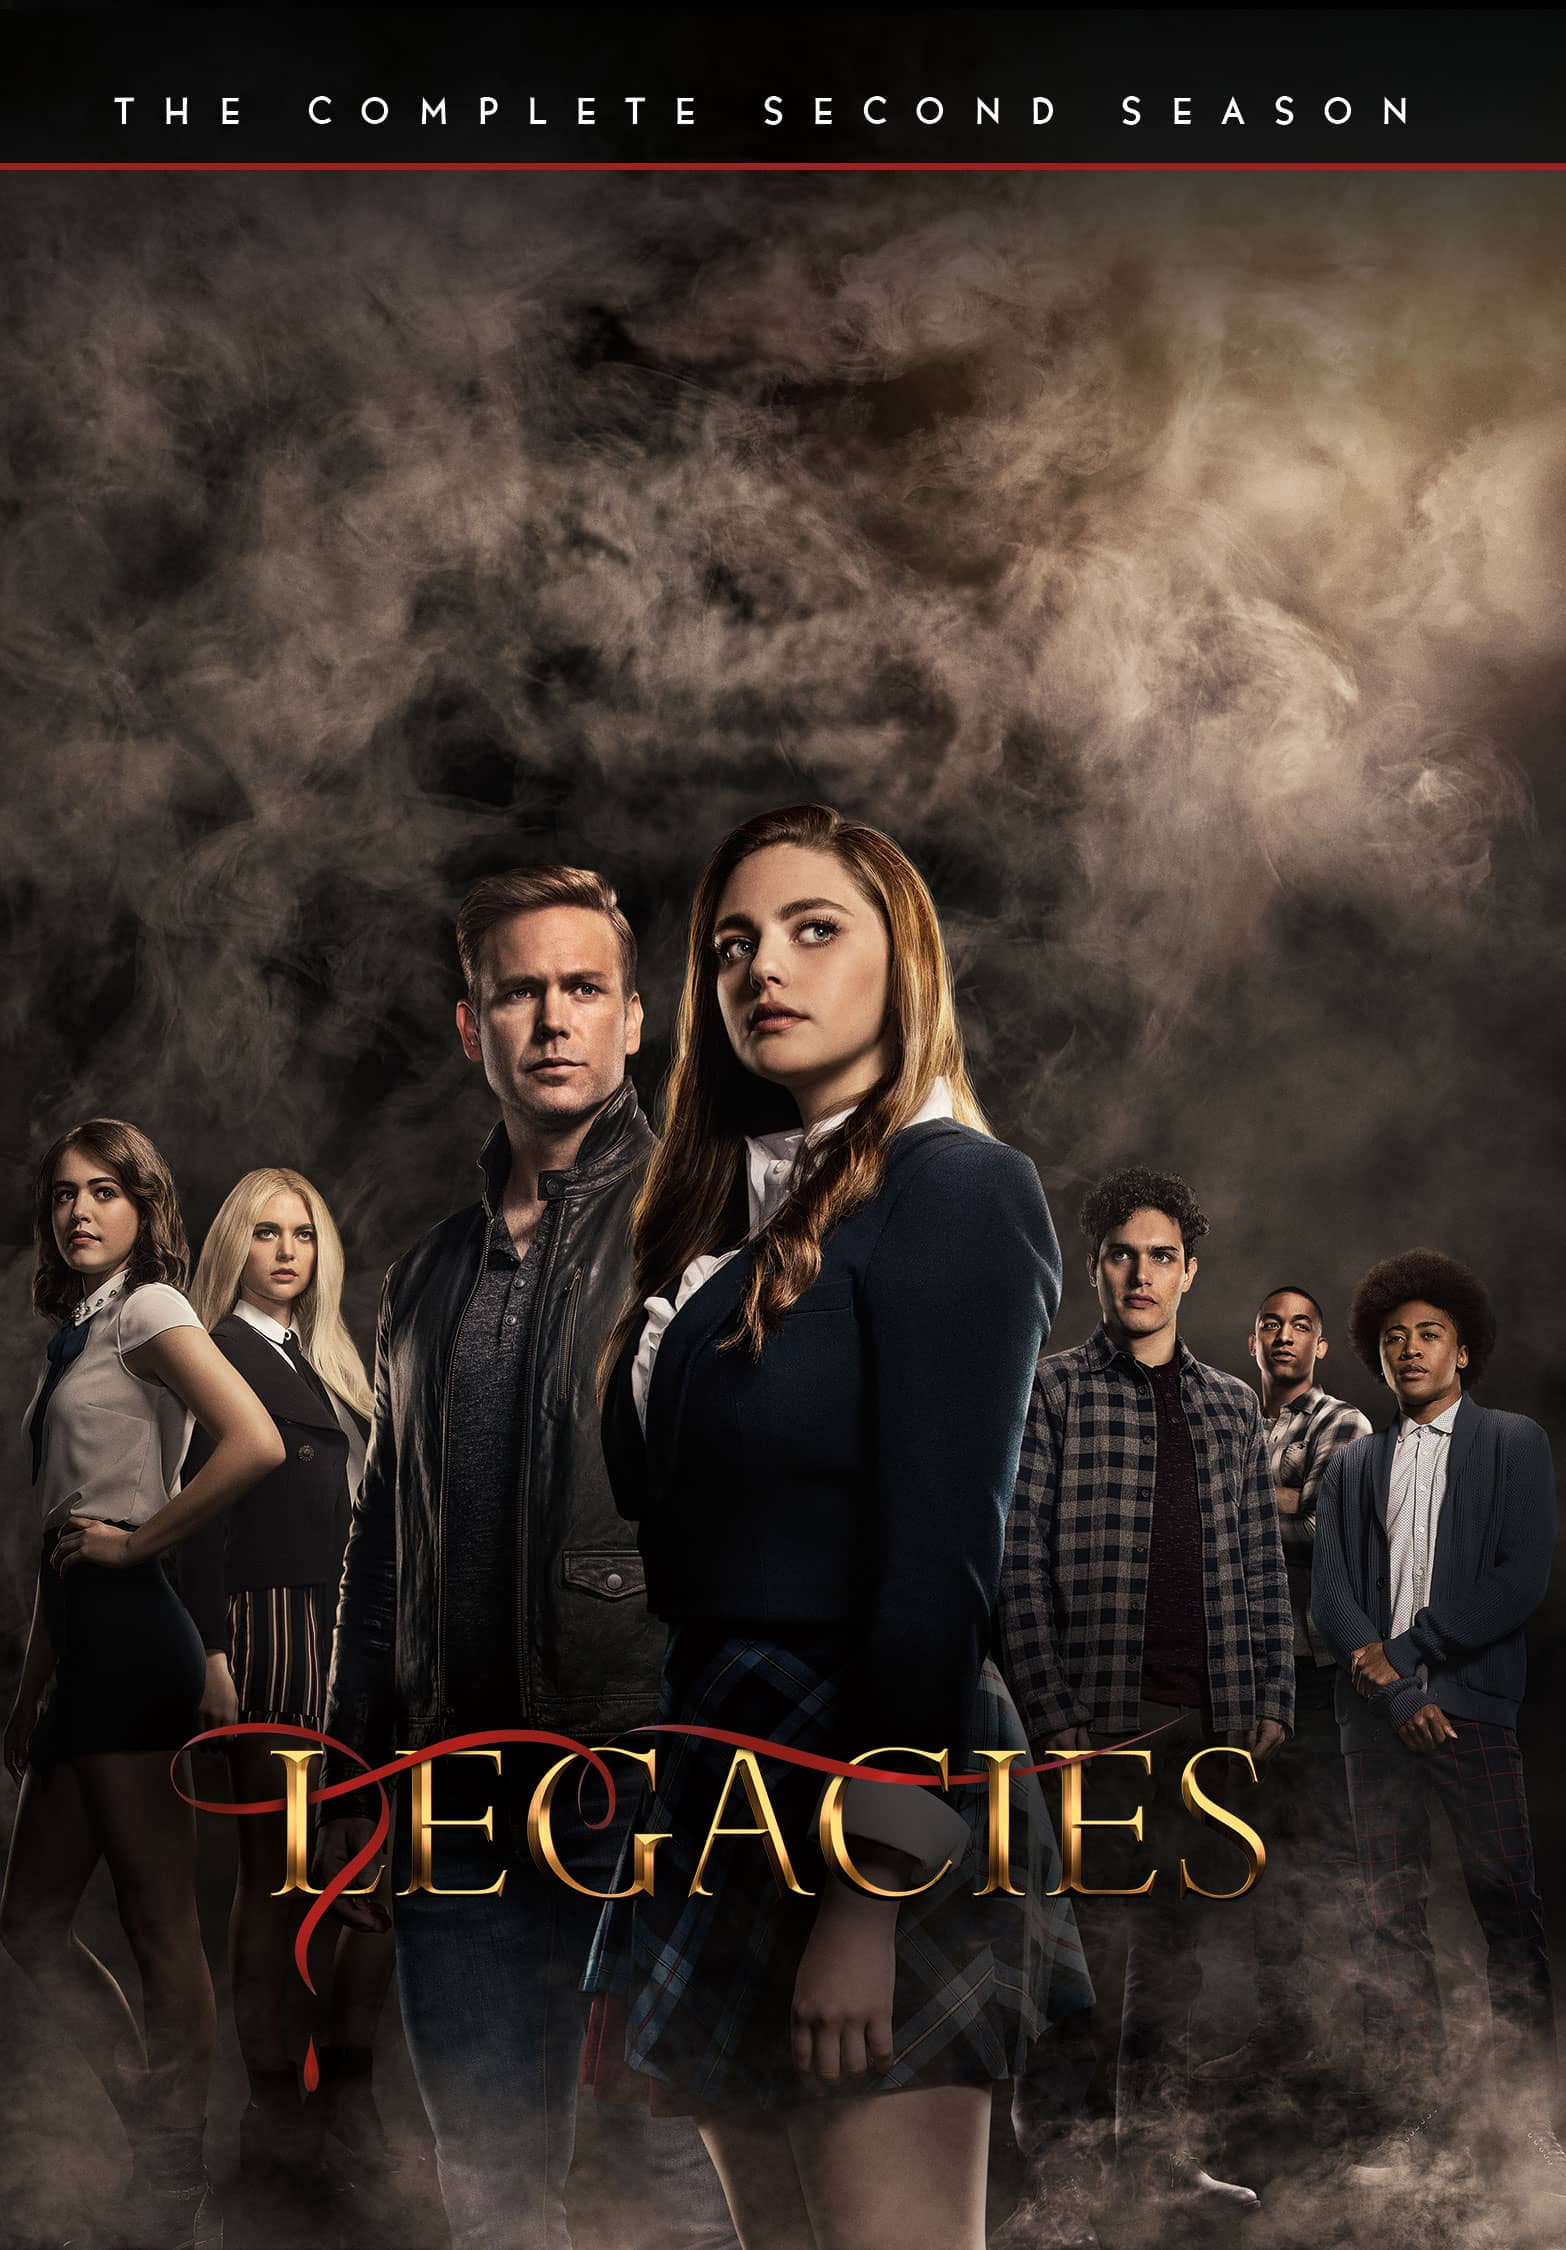 Legacies Season 2 Box Cover Artwork